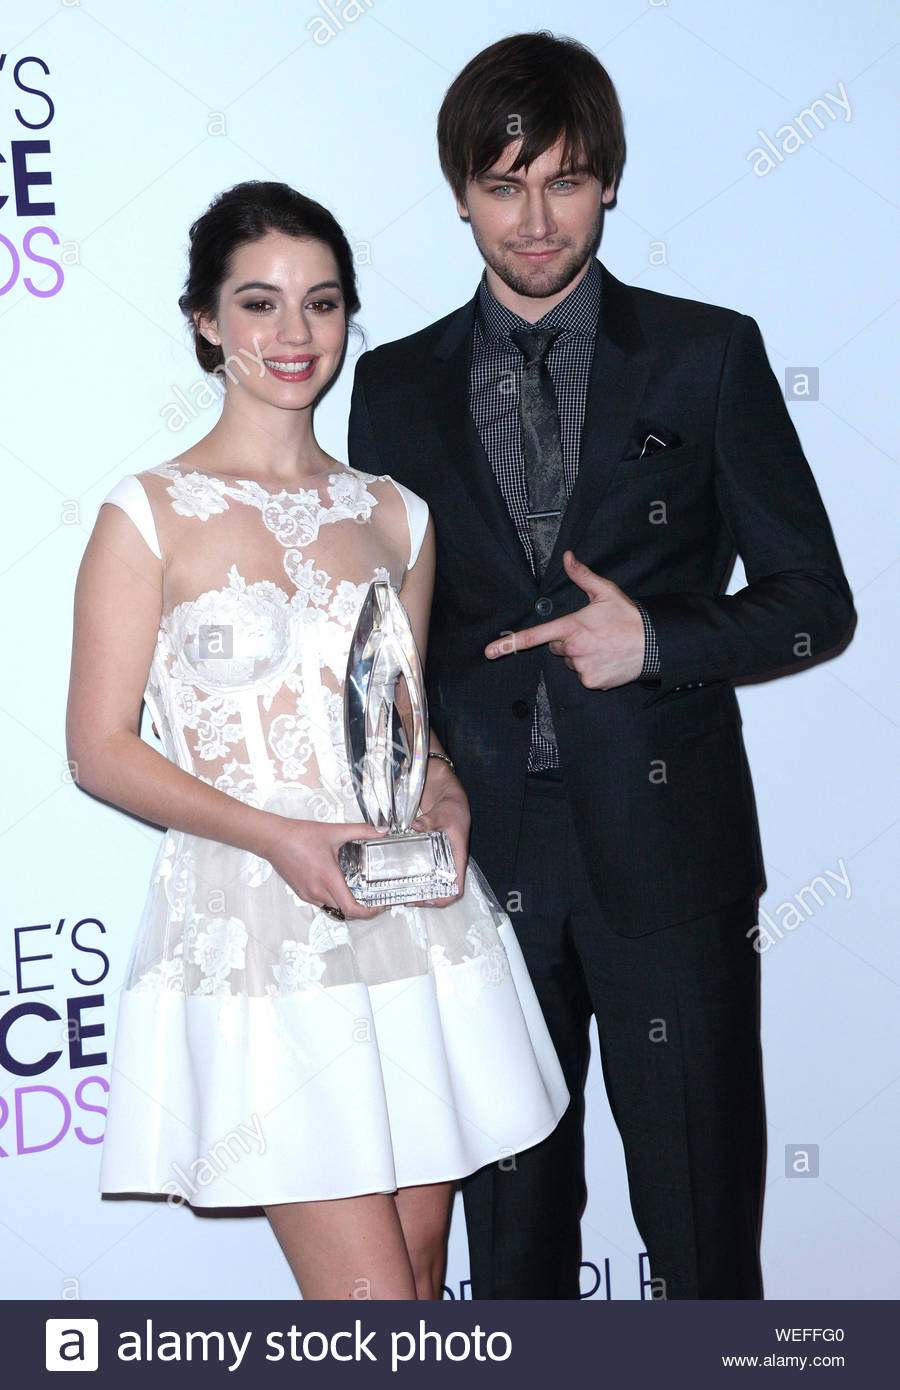 che sta frequentando Torrance Coombs